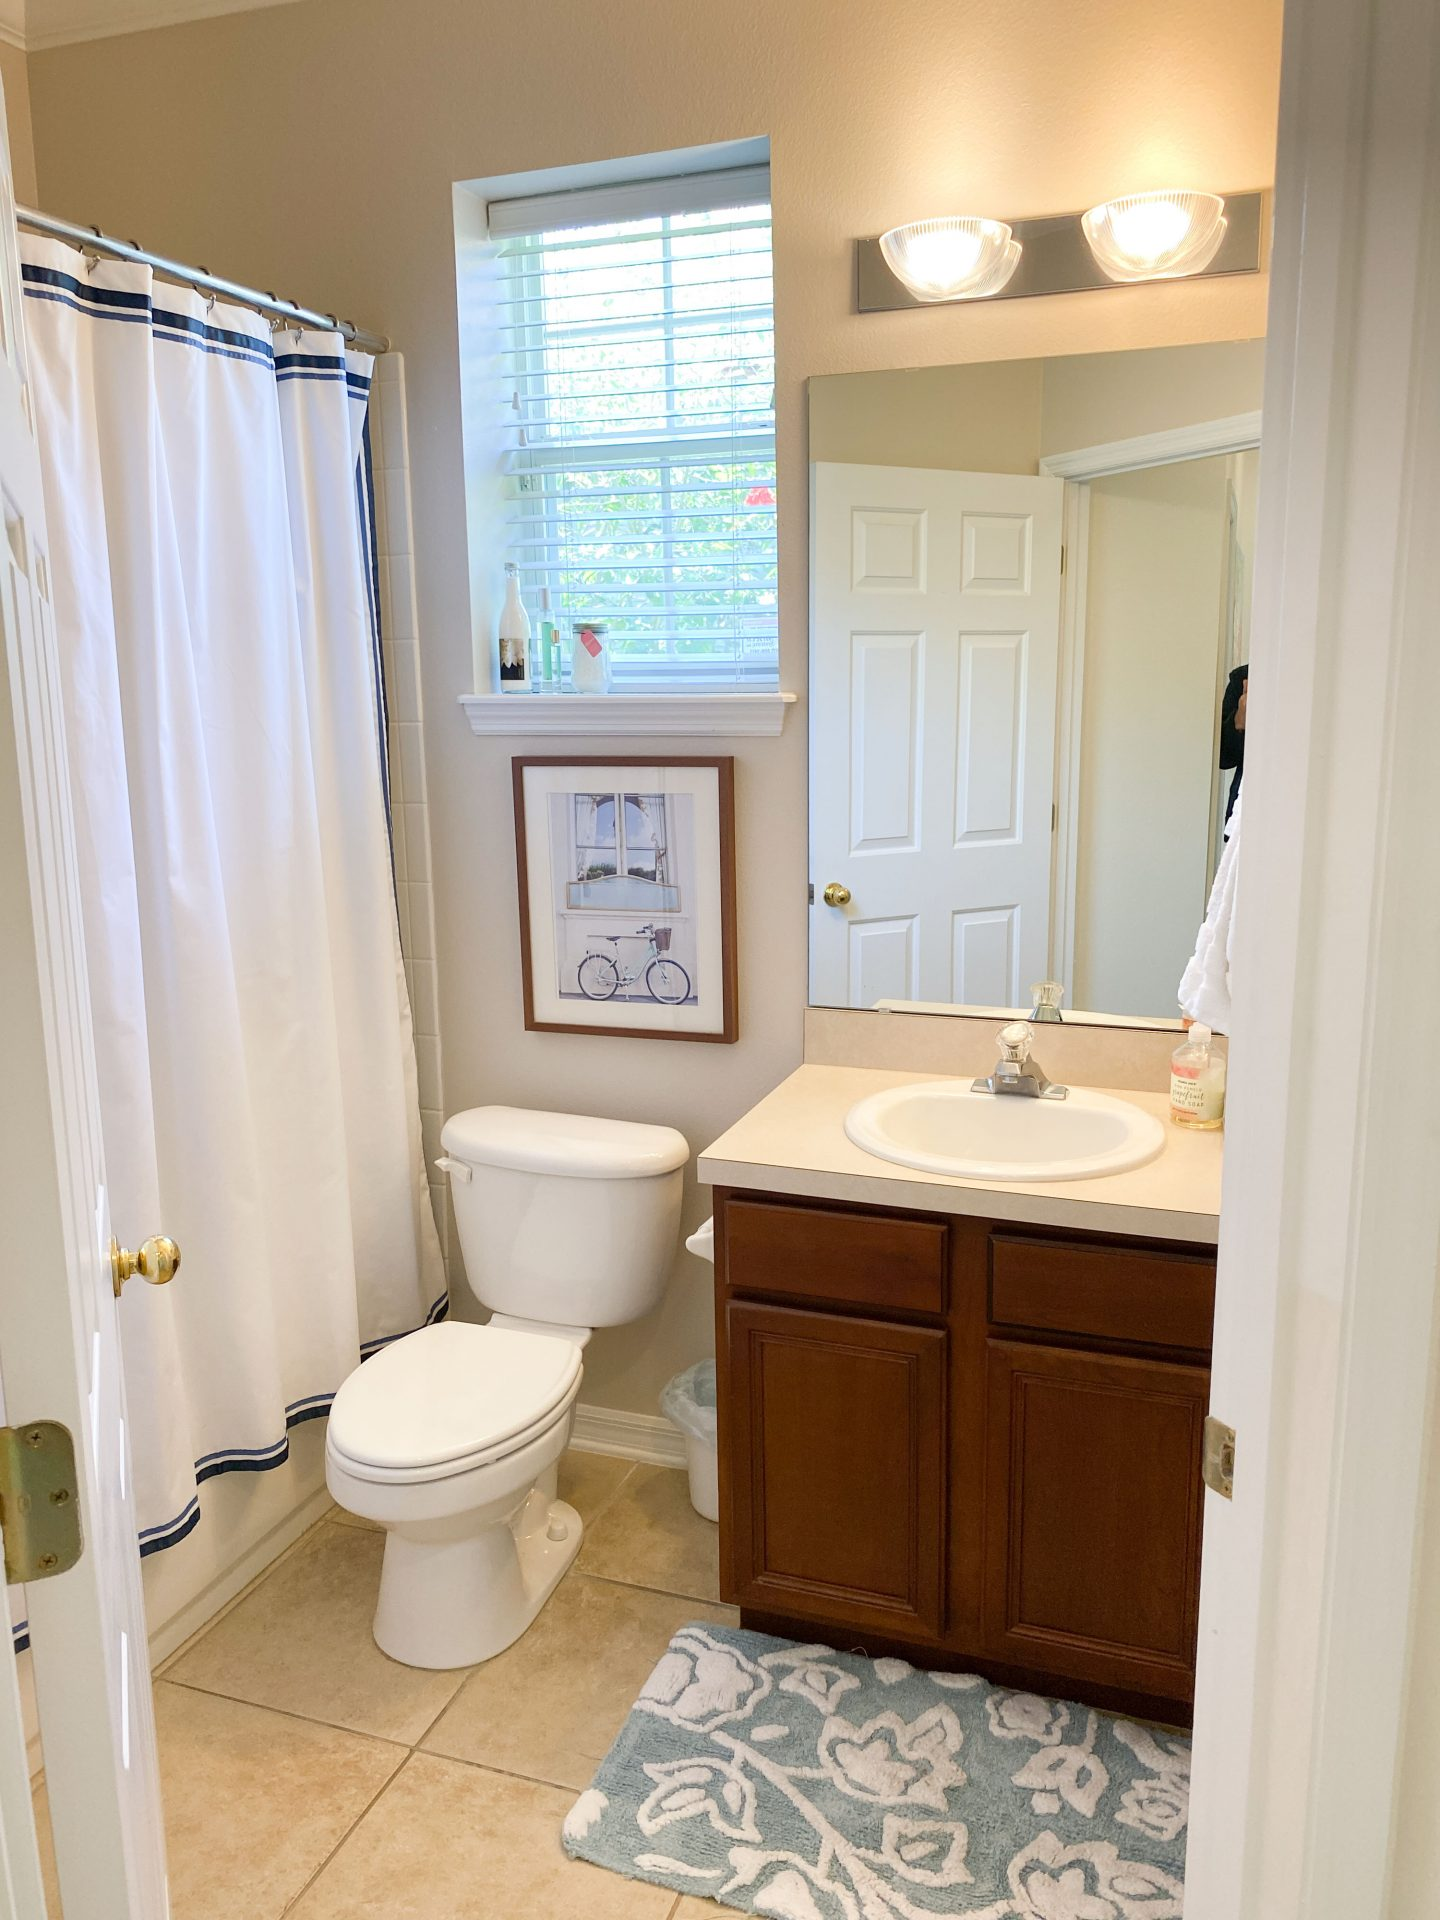 Before the renovation - picture of bathroom